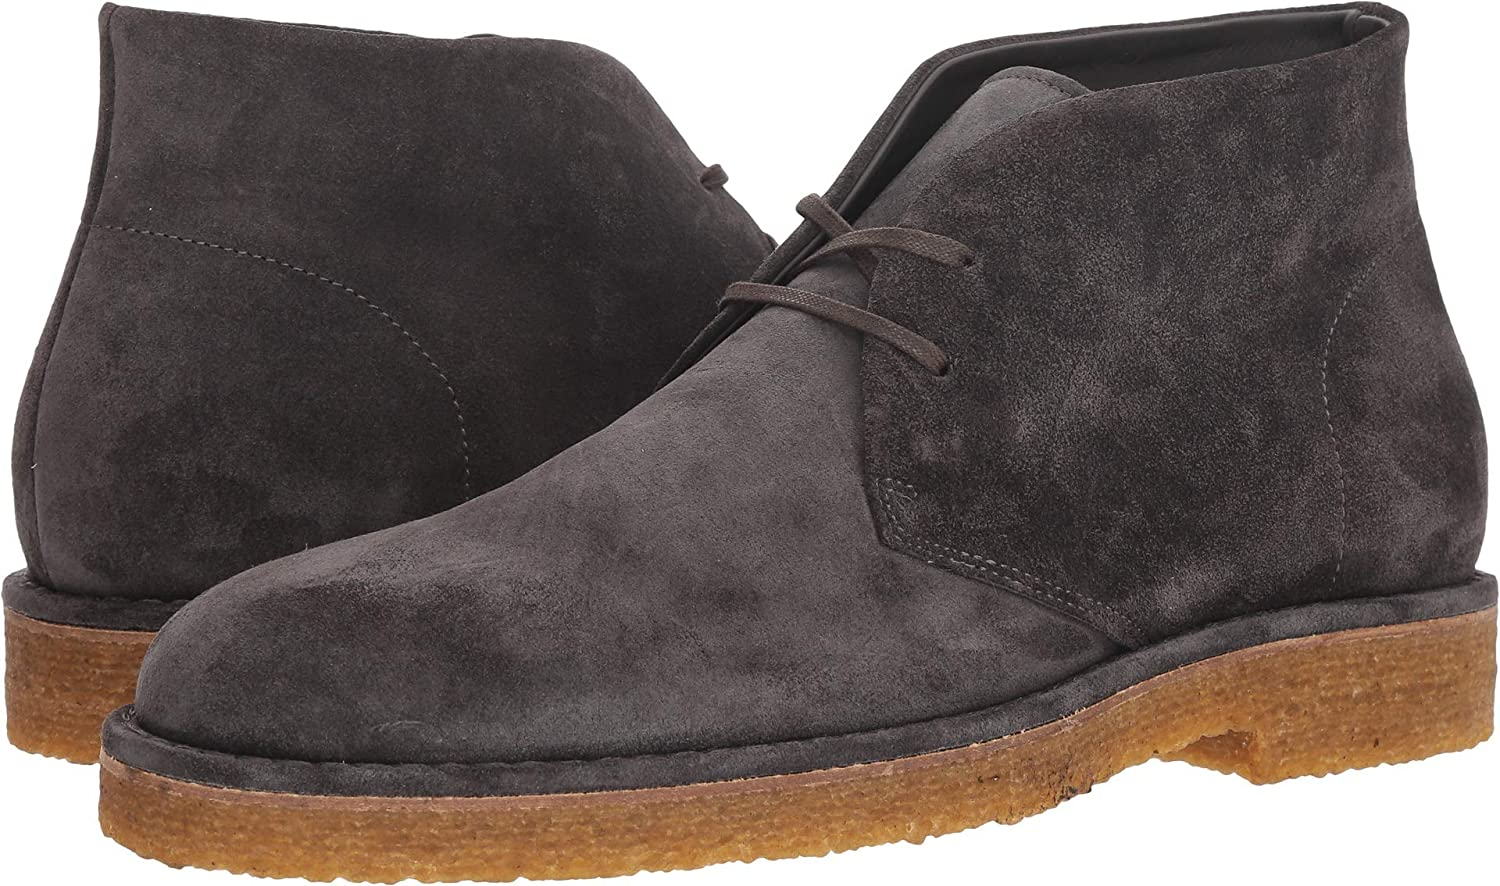 Graphite Suede Vince Men's Crofton